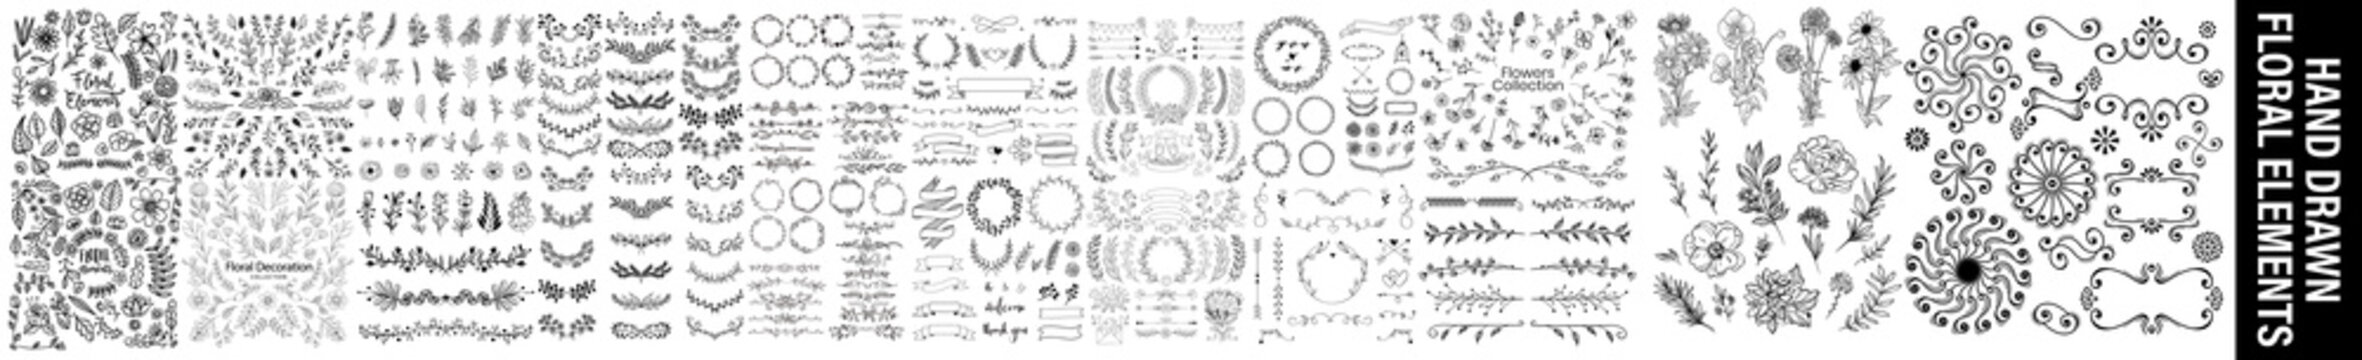 Hand sketched vector vintage elements ( laurels, leaves, flowers, swirls and feathers).sketches and line doodles hand drawn design floral elements, Hand drawn vintage leaves, arrows, feathers.